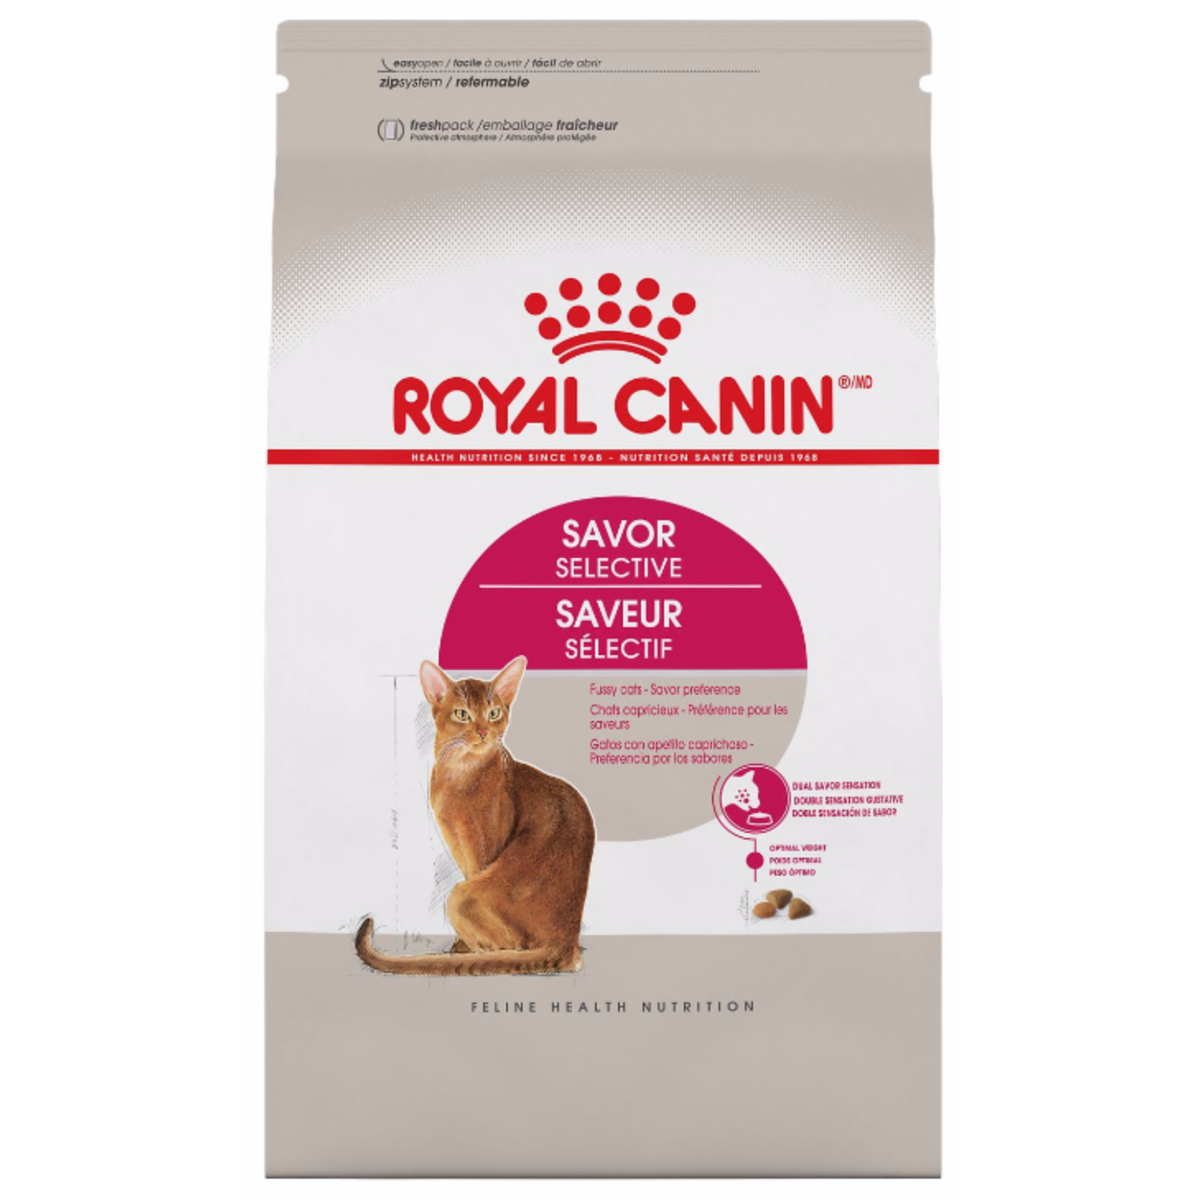 Royal Canin Selective Savour Sensation Cat Food